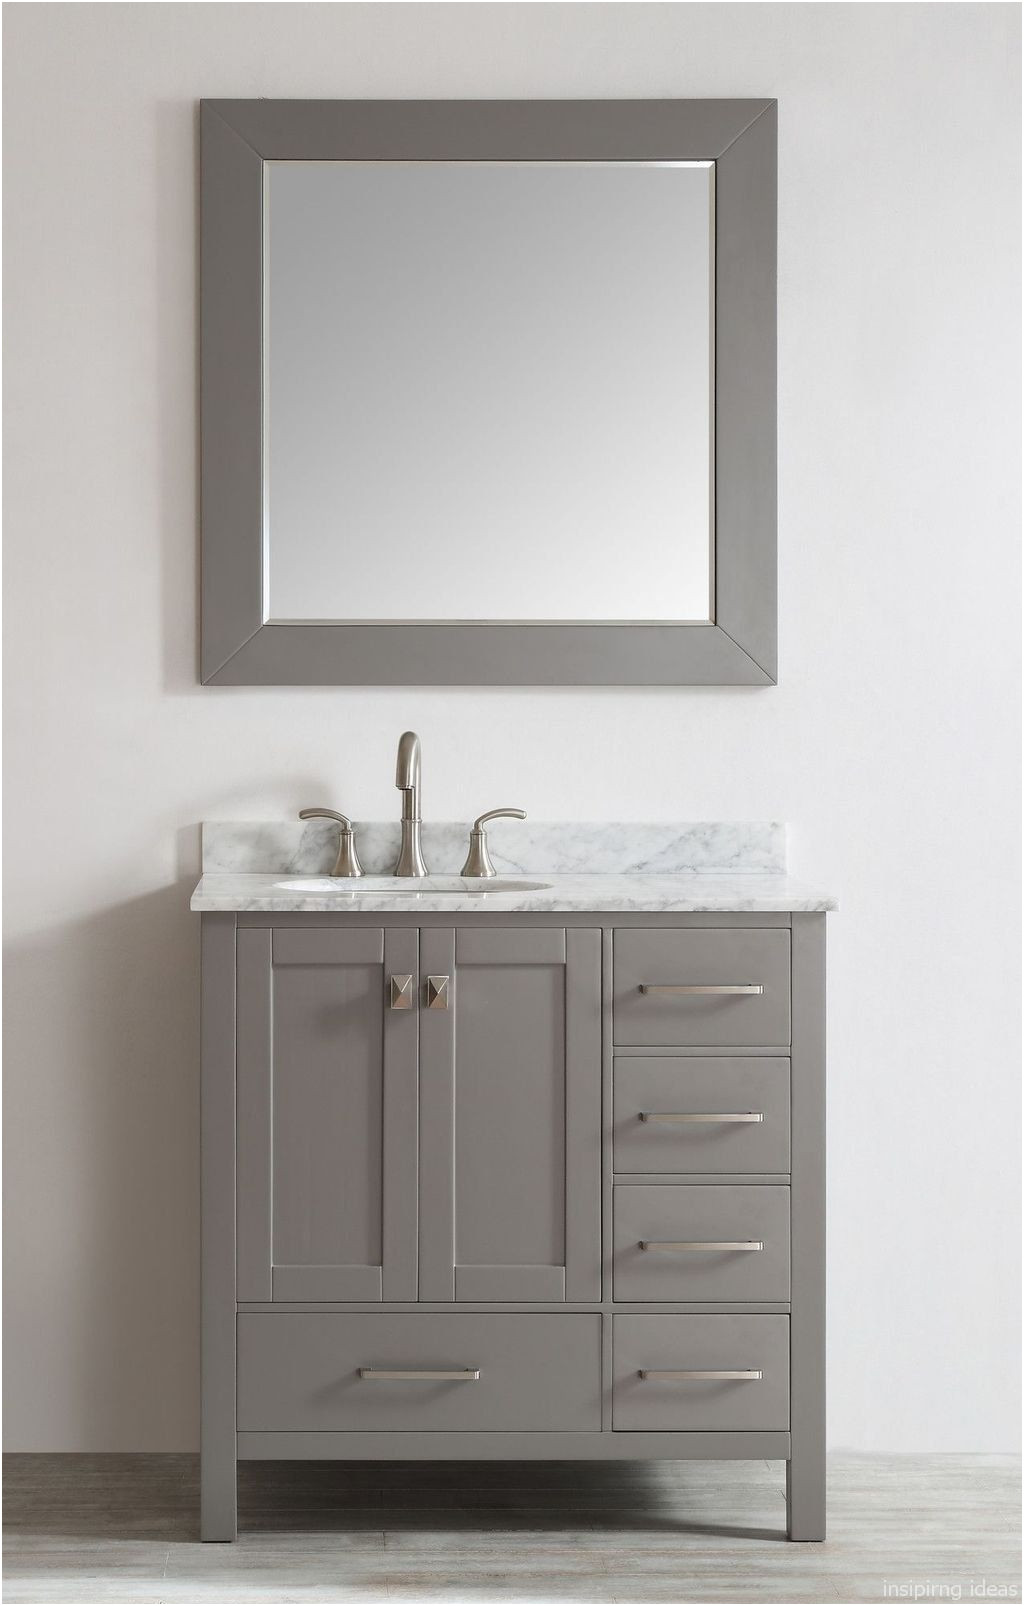 Lovely Small White Mirrored Bathroom Cabinet